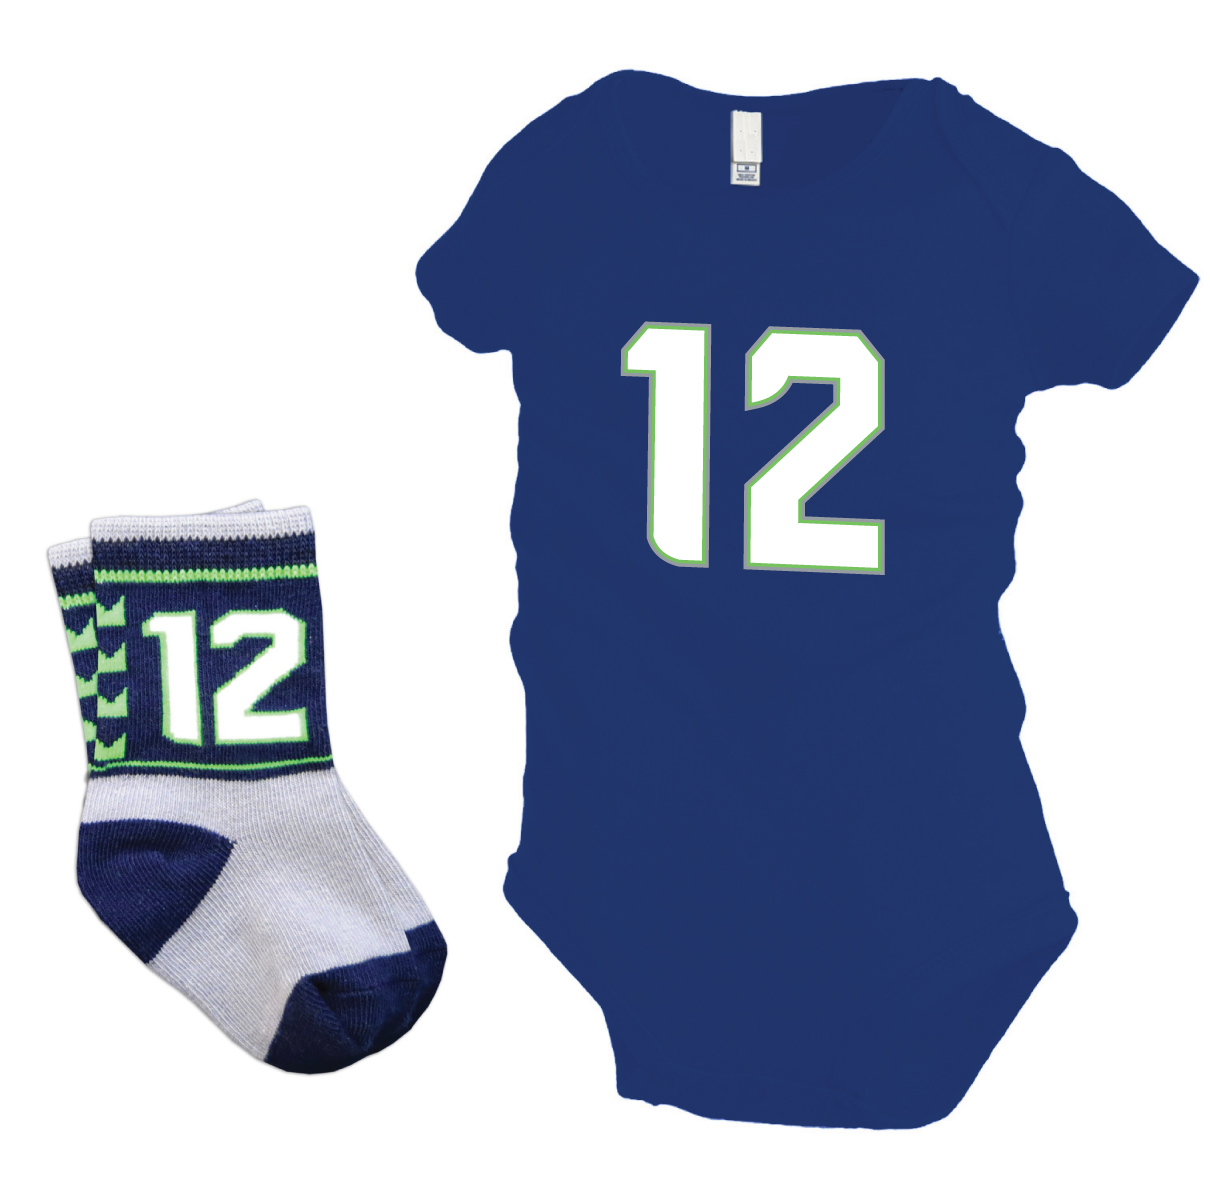 Seattle Seahawks 12th baby gift pack with #12 onesie and socks by Code Four Athletics